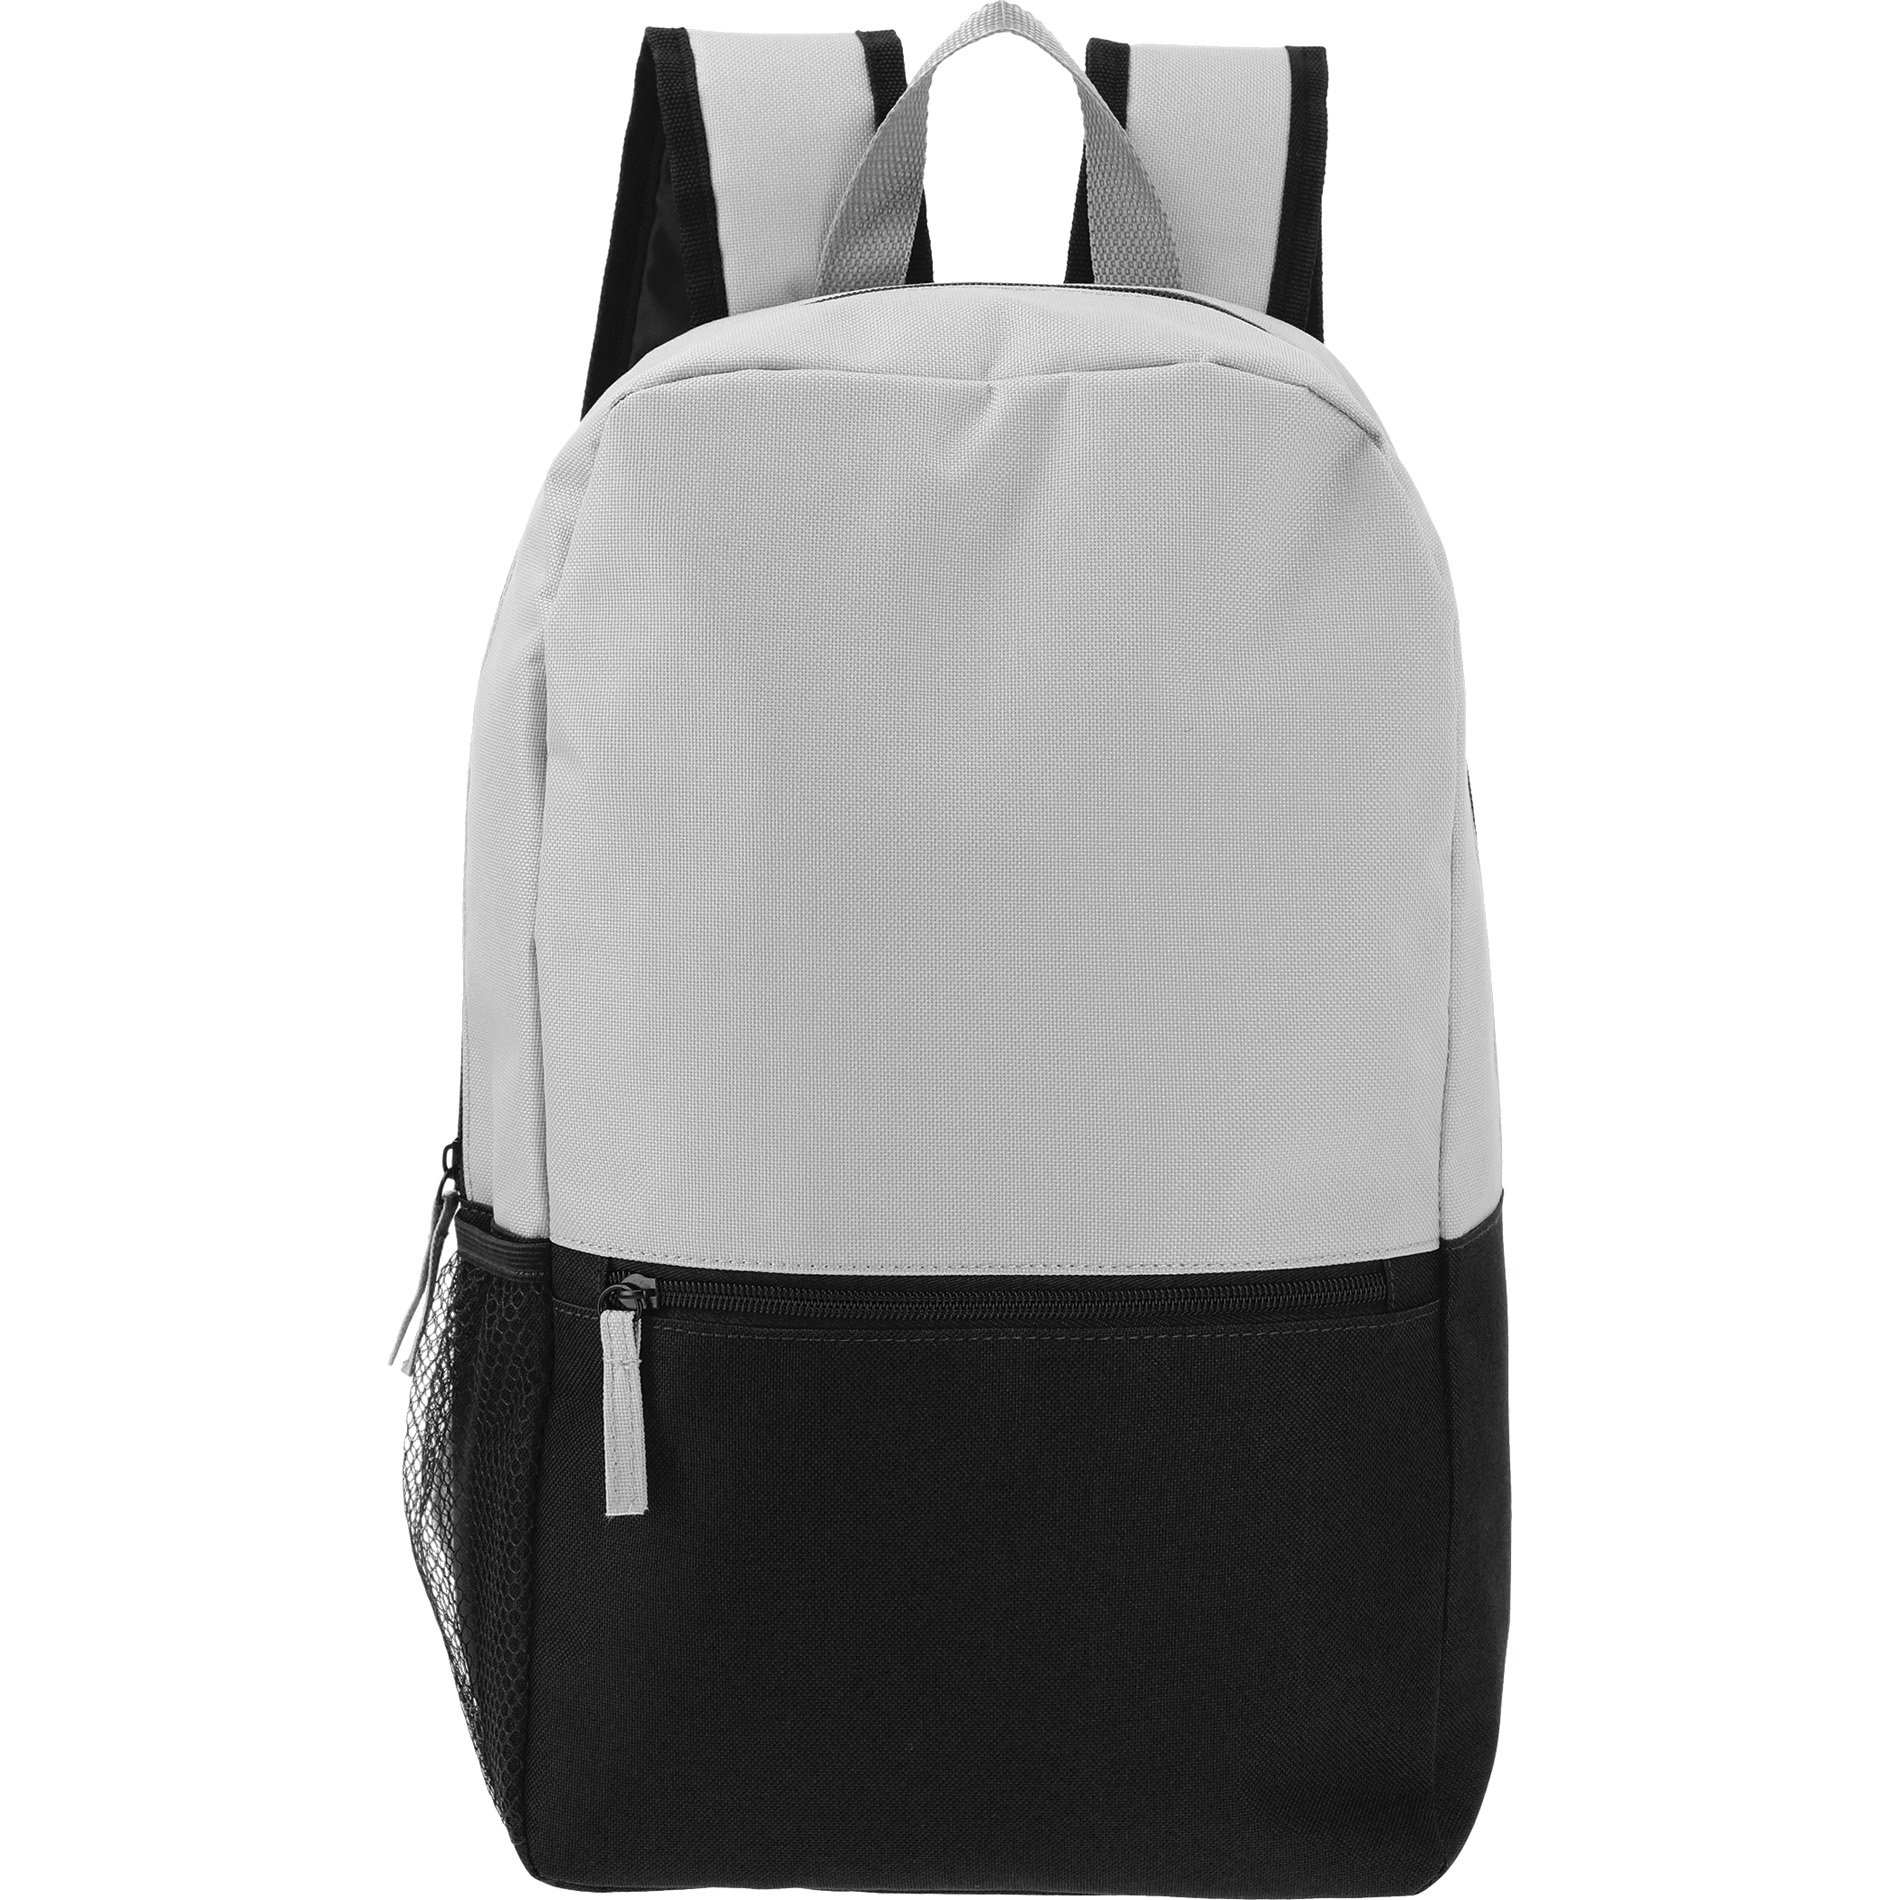 LEEDS SM-5901 - Toned Backpack